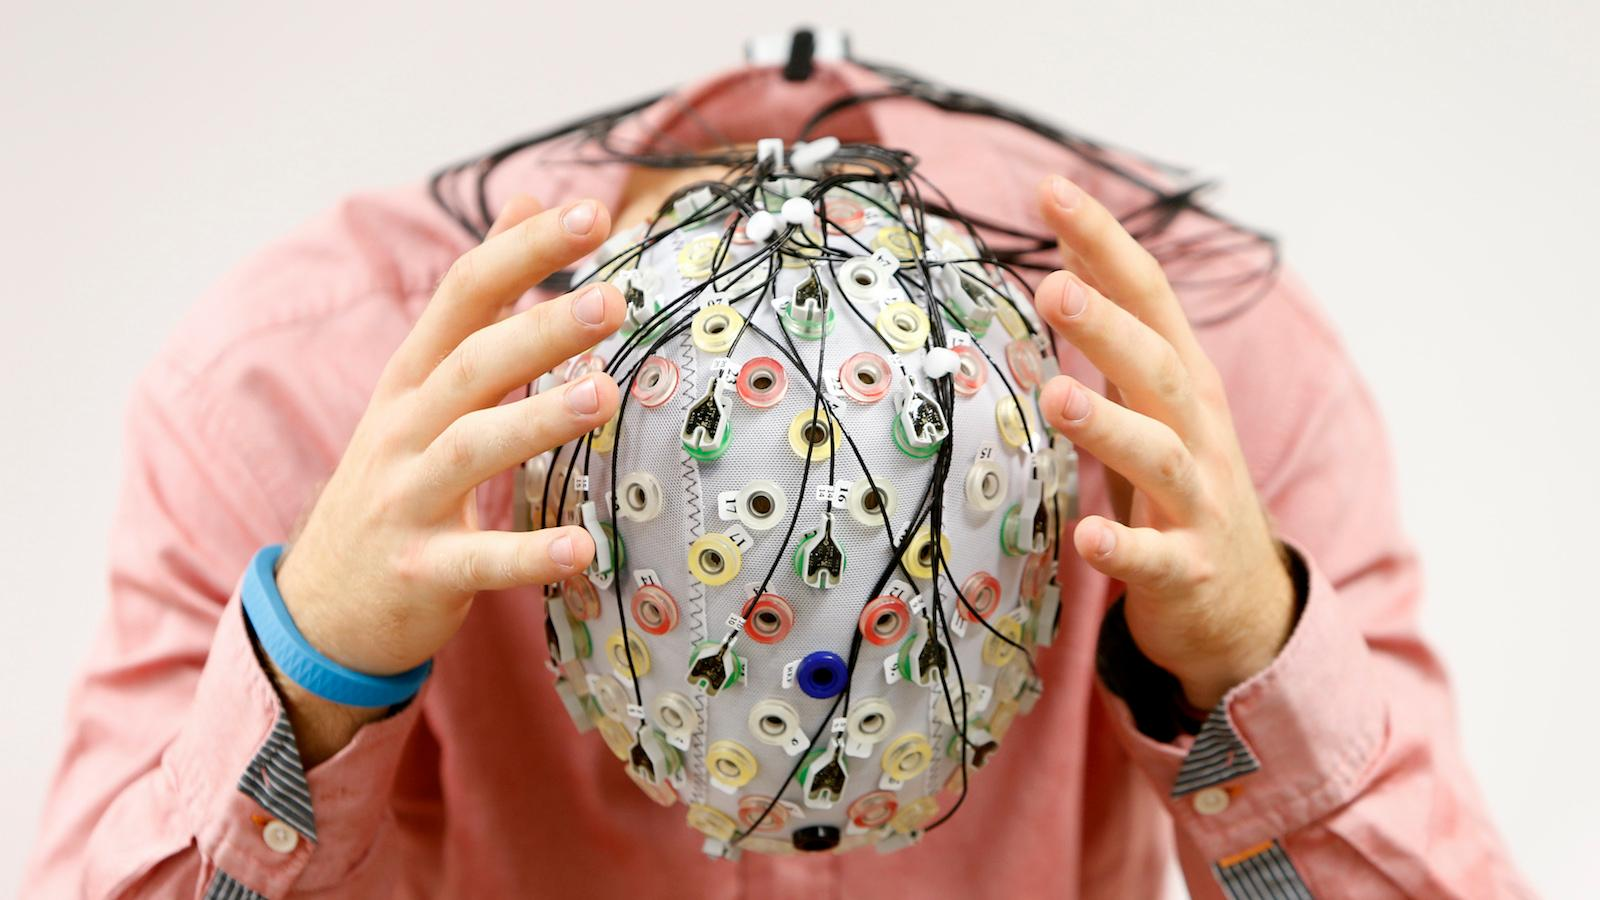 China is monitoring employees' brain waves and emotions in factories